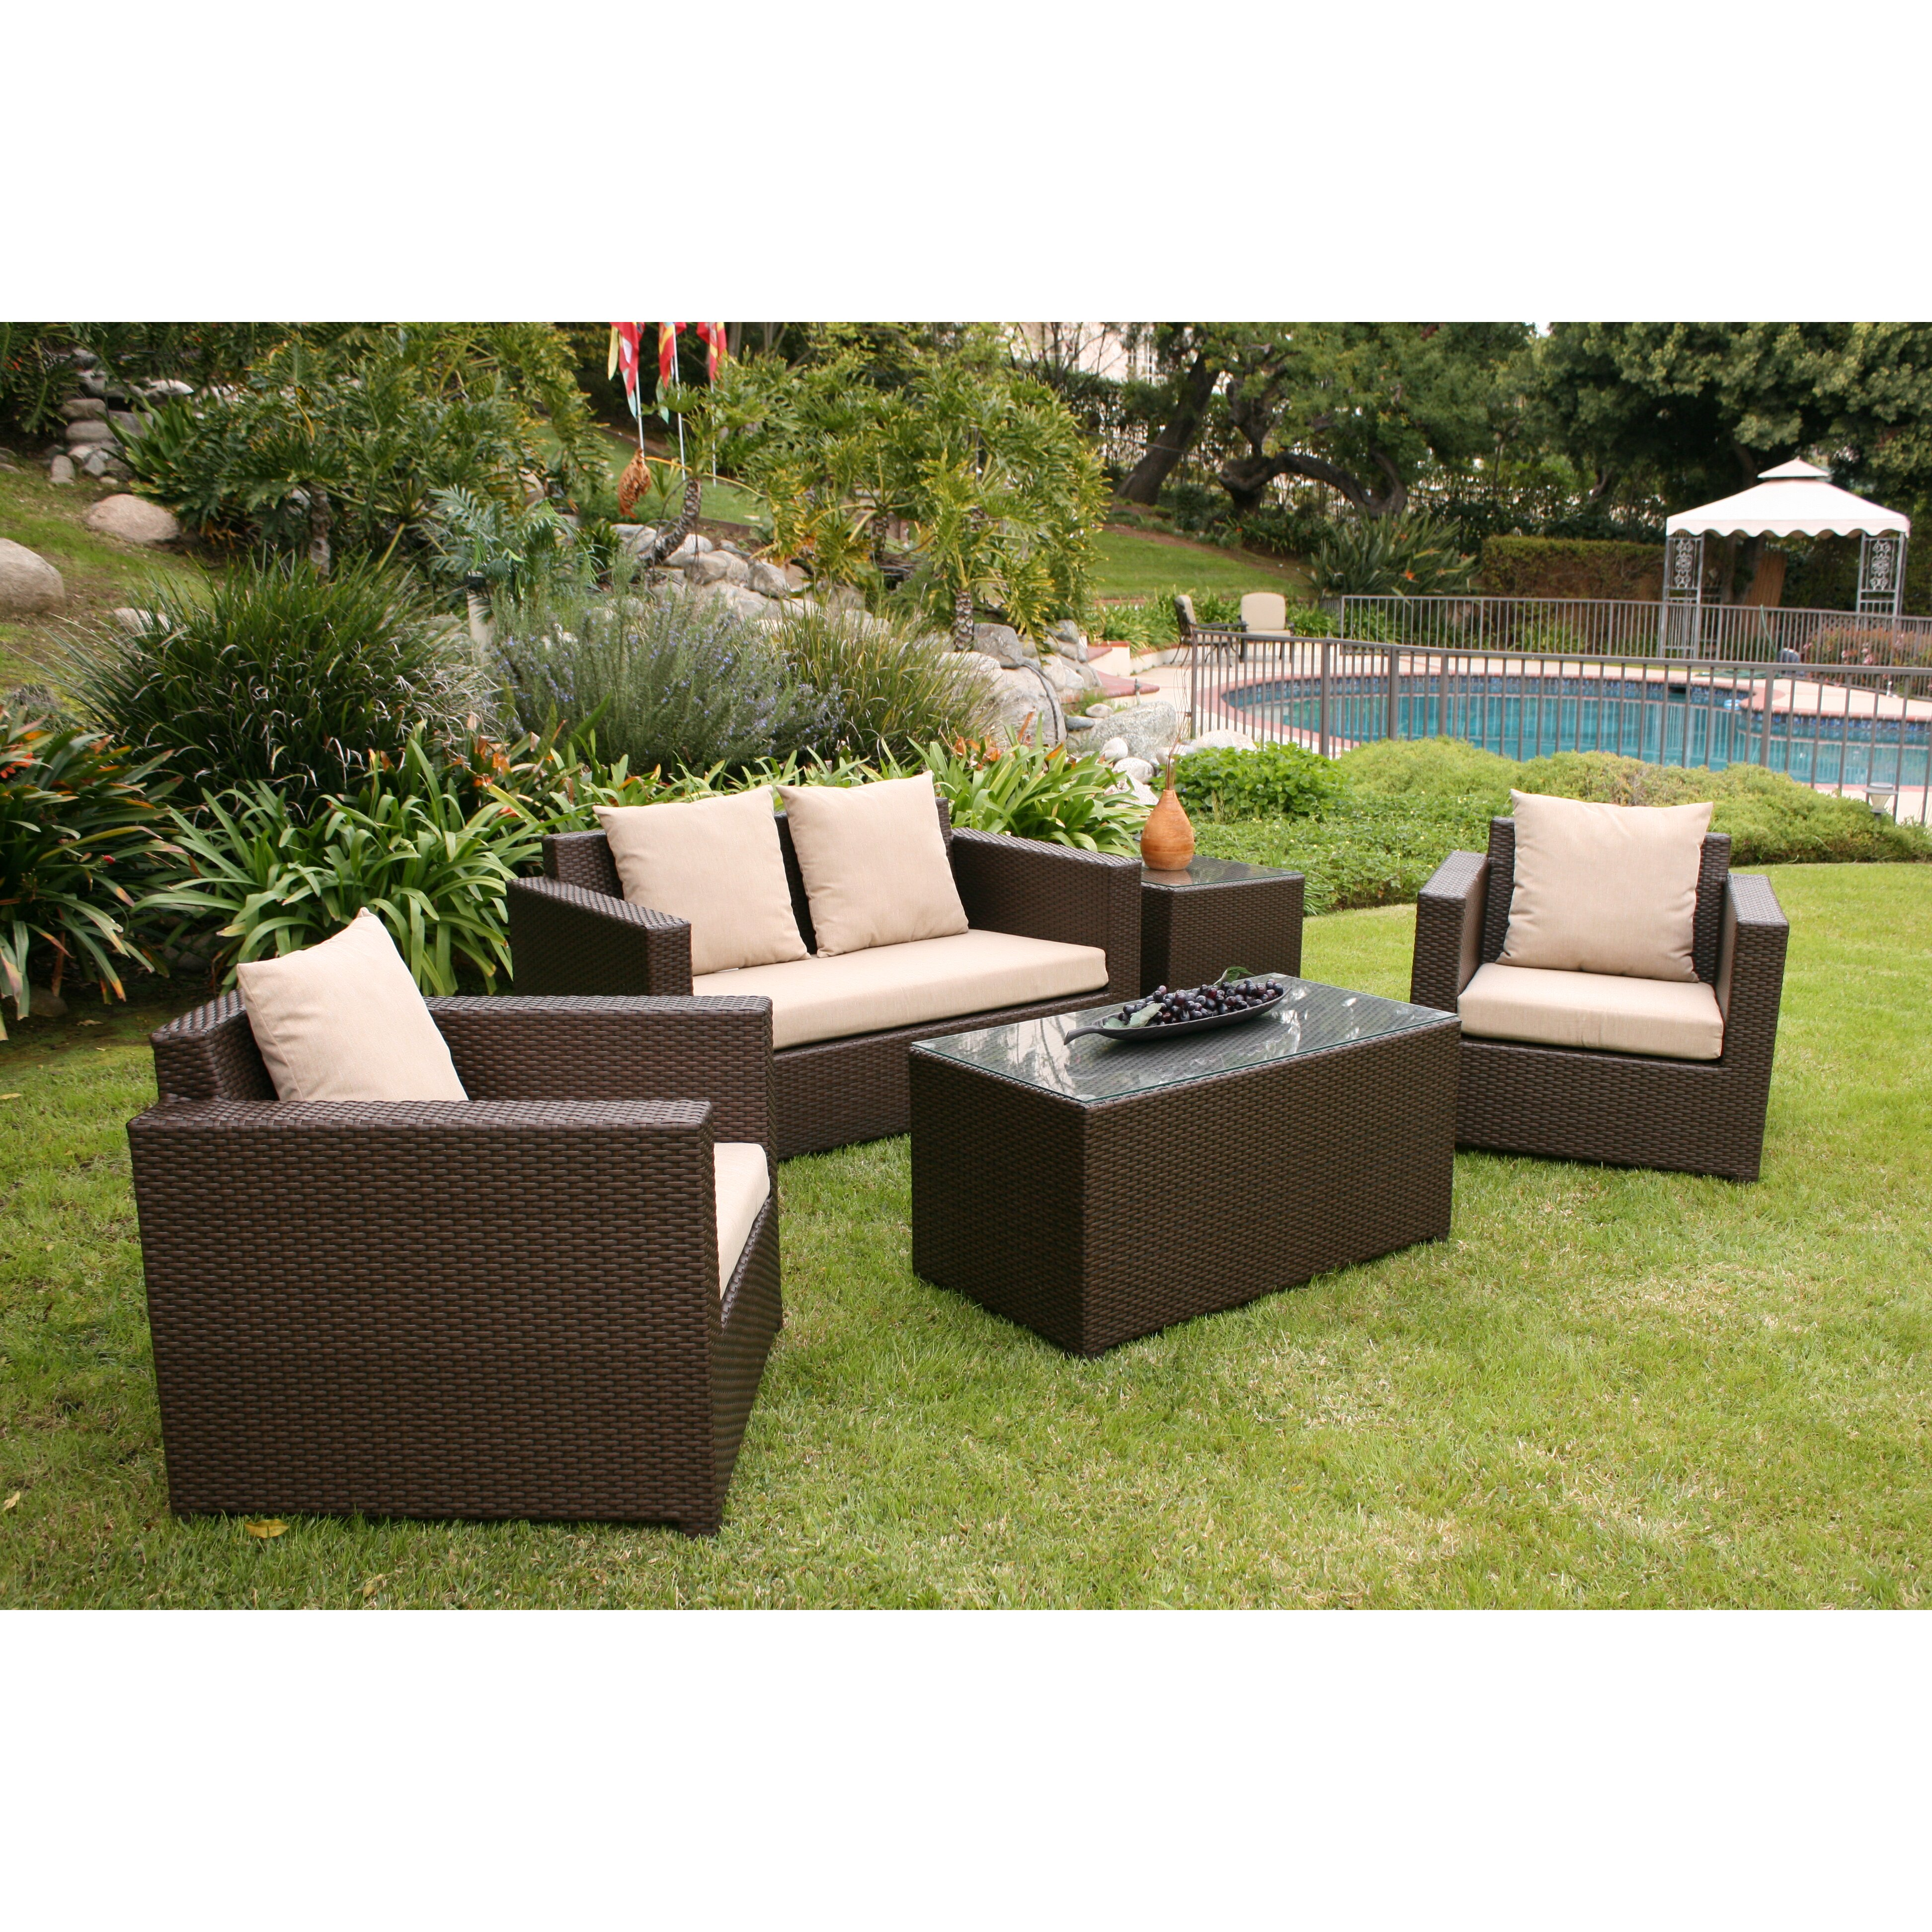 Aic Garden Casual Metro 5 Piece Deep Seating Group With Cushions Reviews Wayfair